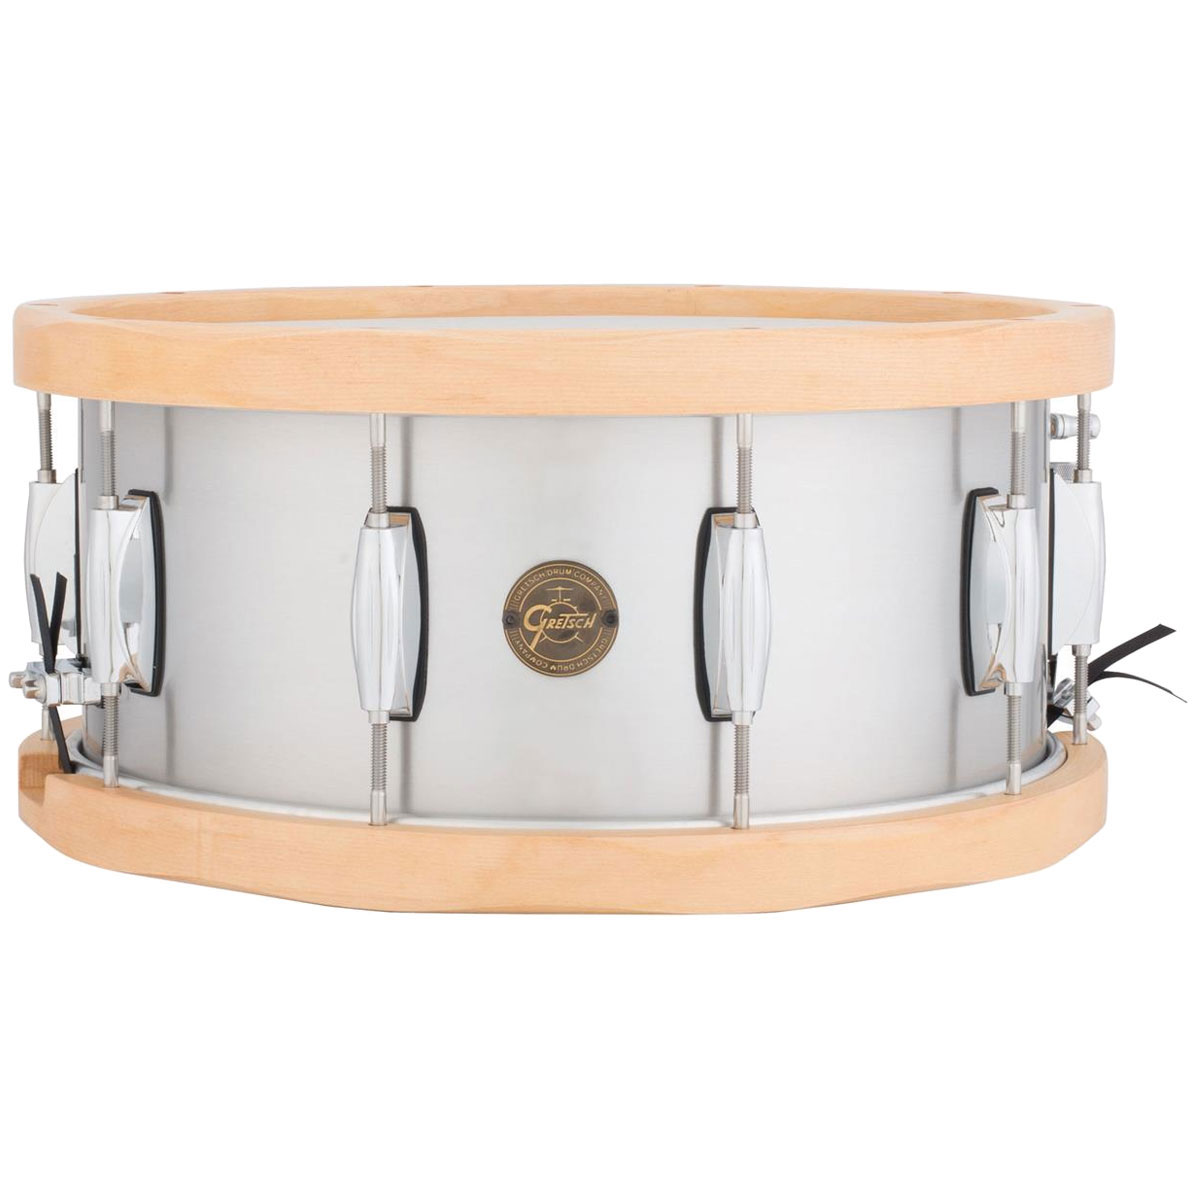 "Gretsch 6.5"" x 14"" Full Range Aluminum Snare Drum with Wood Hoops"